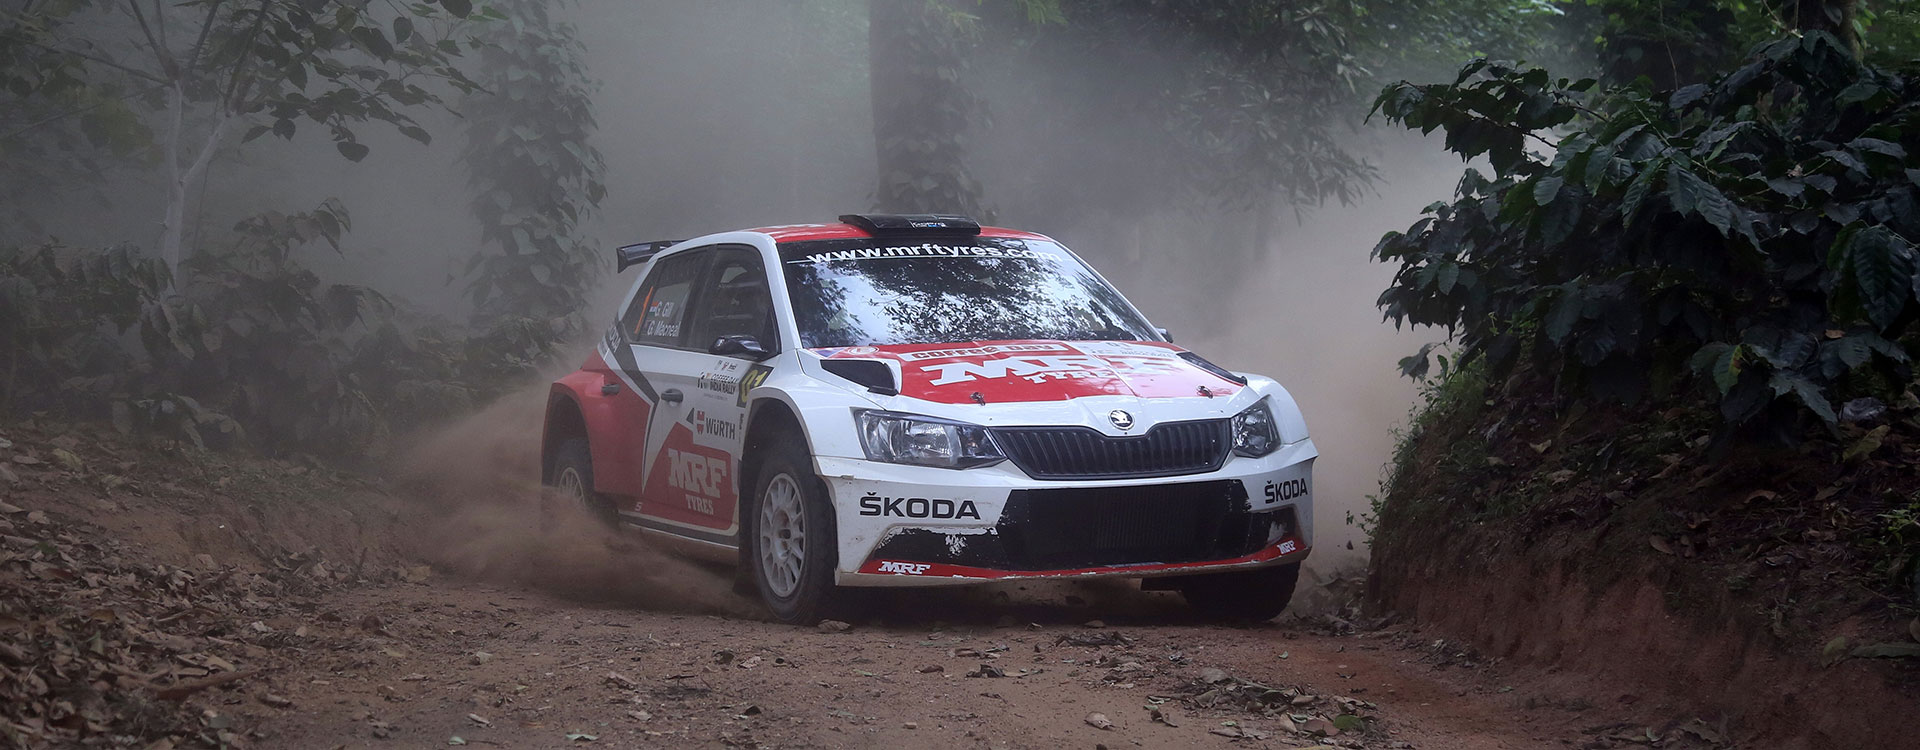 PHOTO: ŠKODA MRF Team at the India Rally 2016